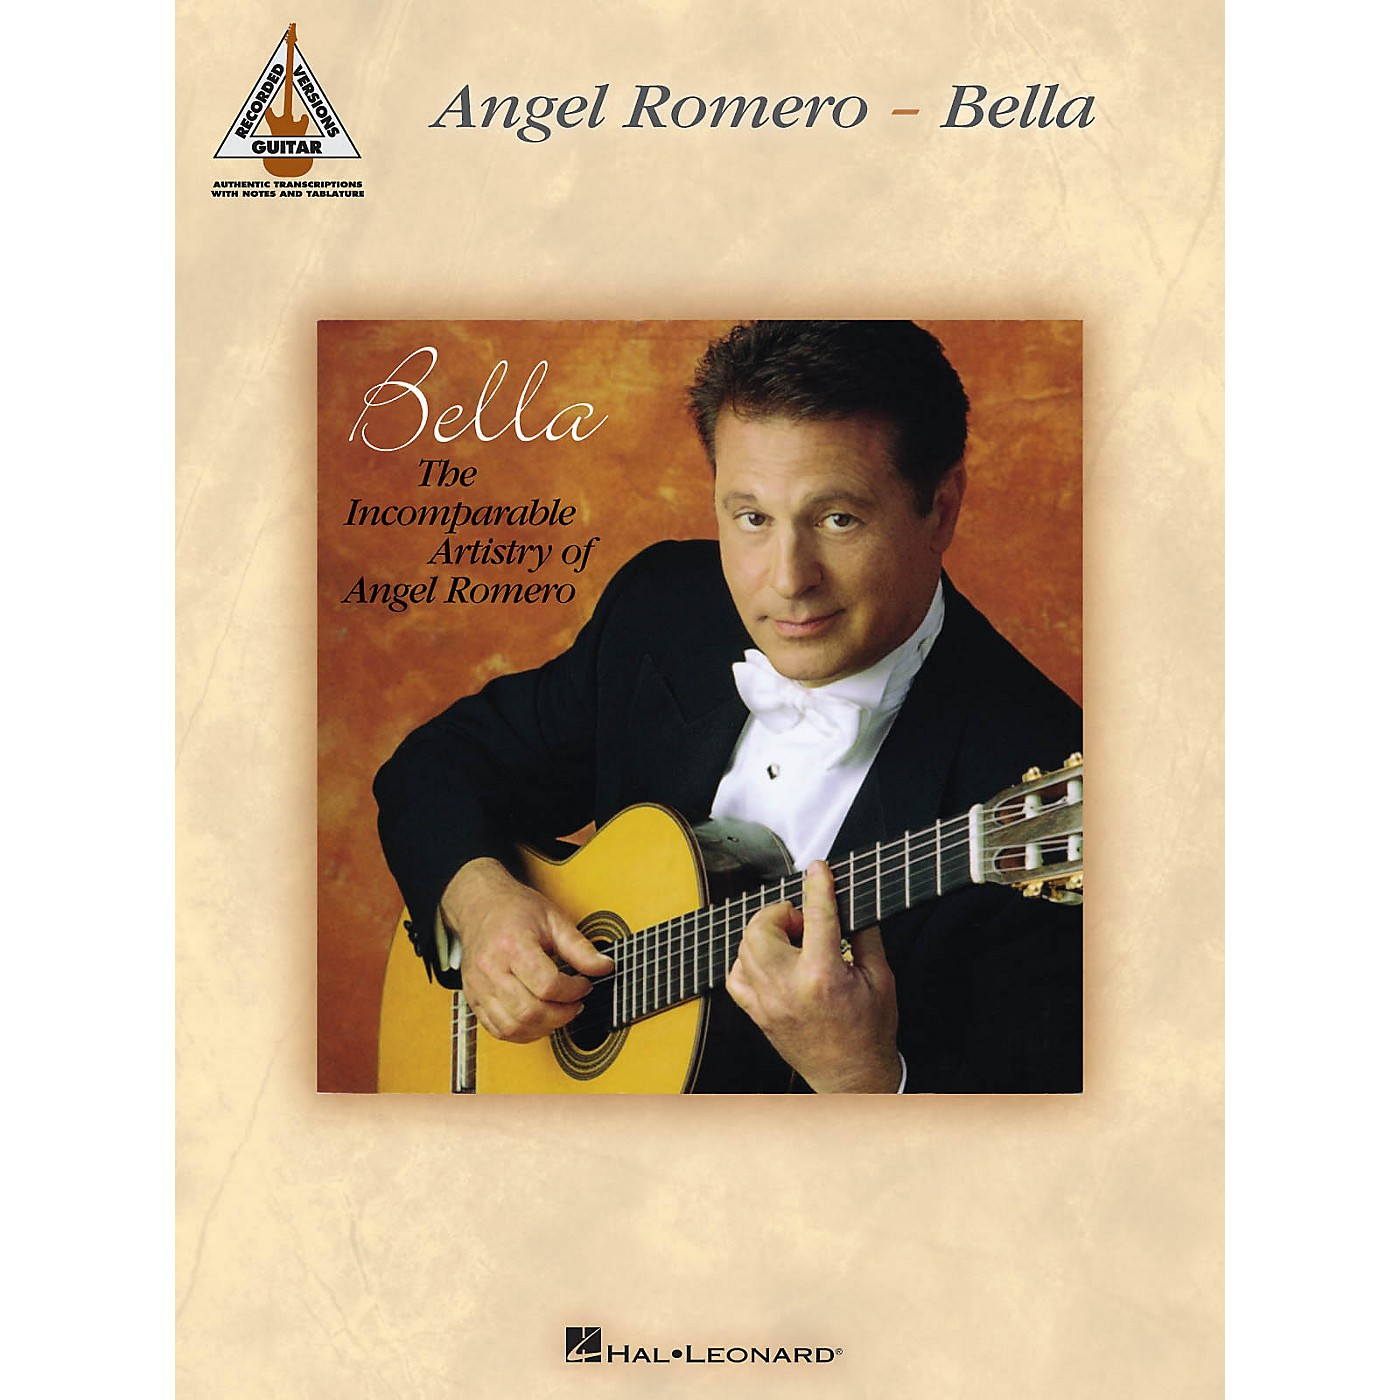 Hal Leonard Angel Romero - Bella Guitar Recorded Version Series Softcover Performed by Angel Romero thumbnail